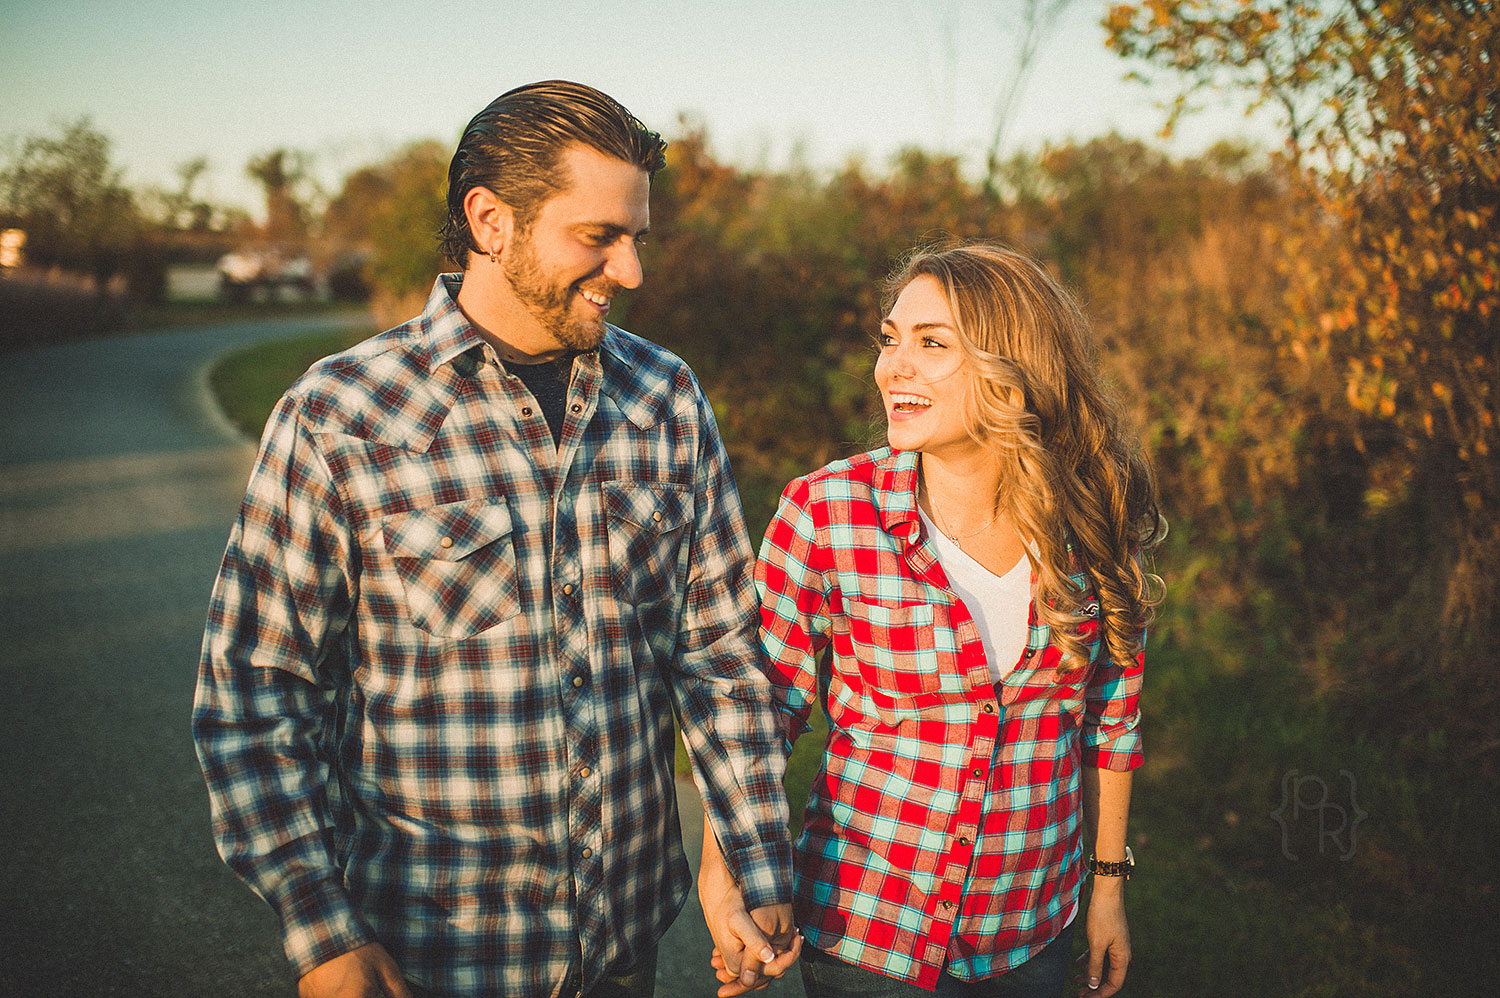 pat-robinson-photography-wilmington-engagement-session-11.jpg